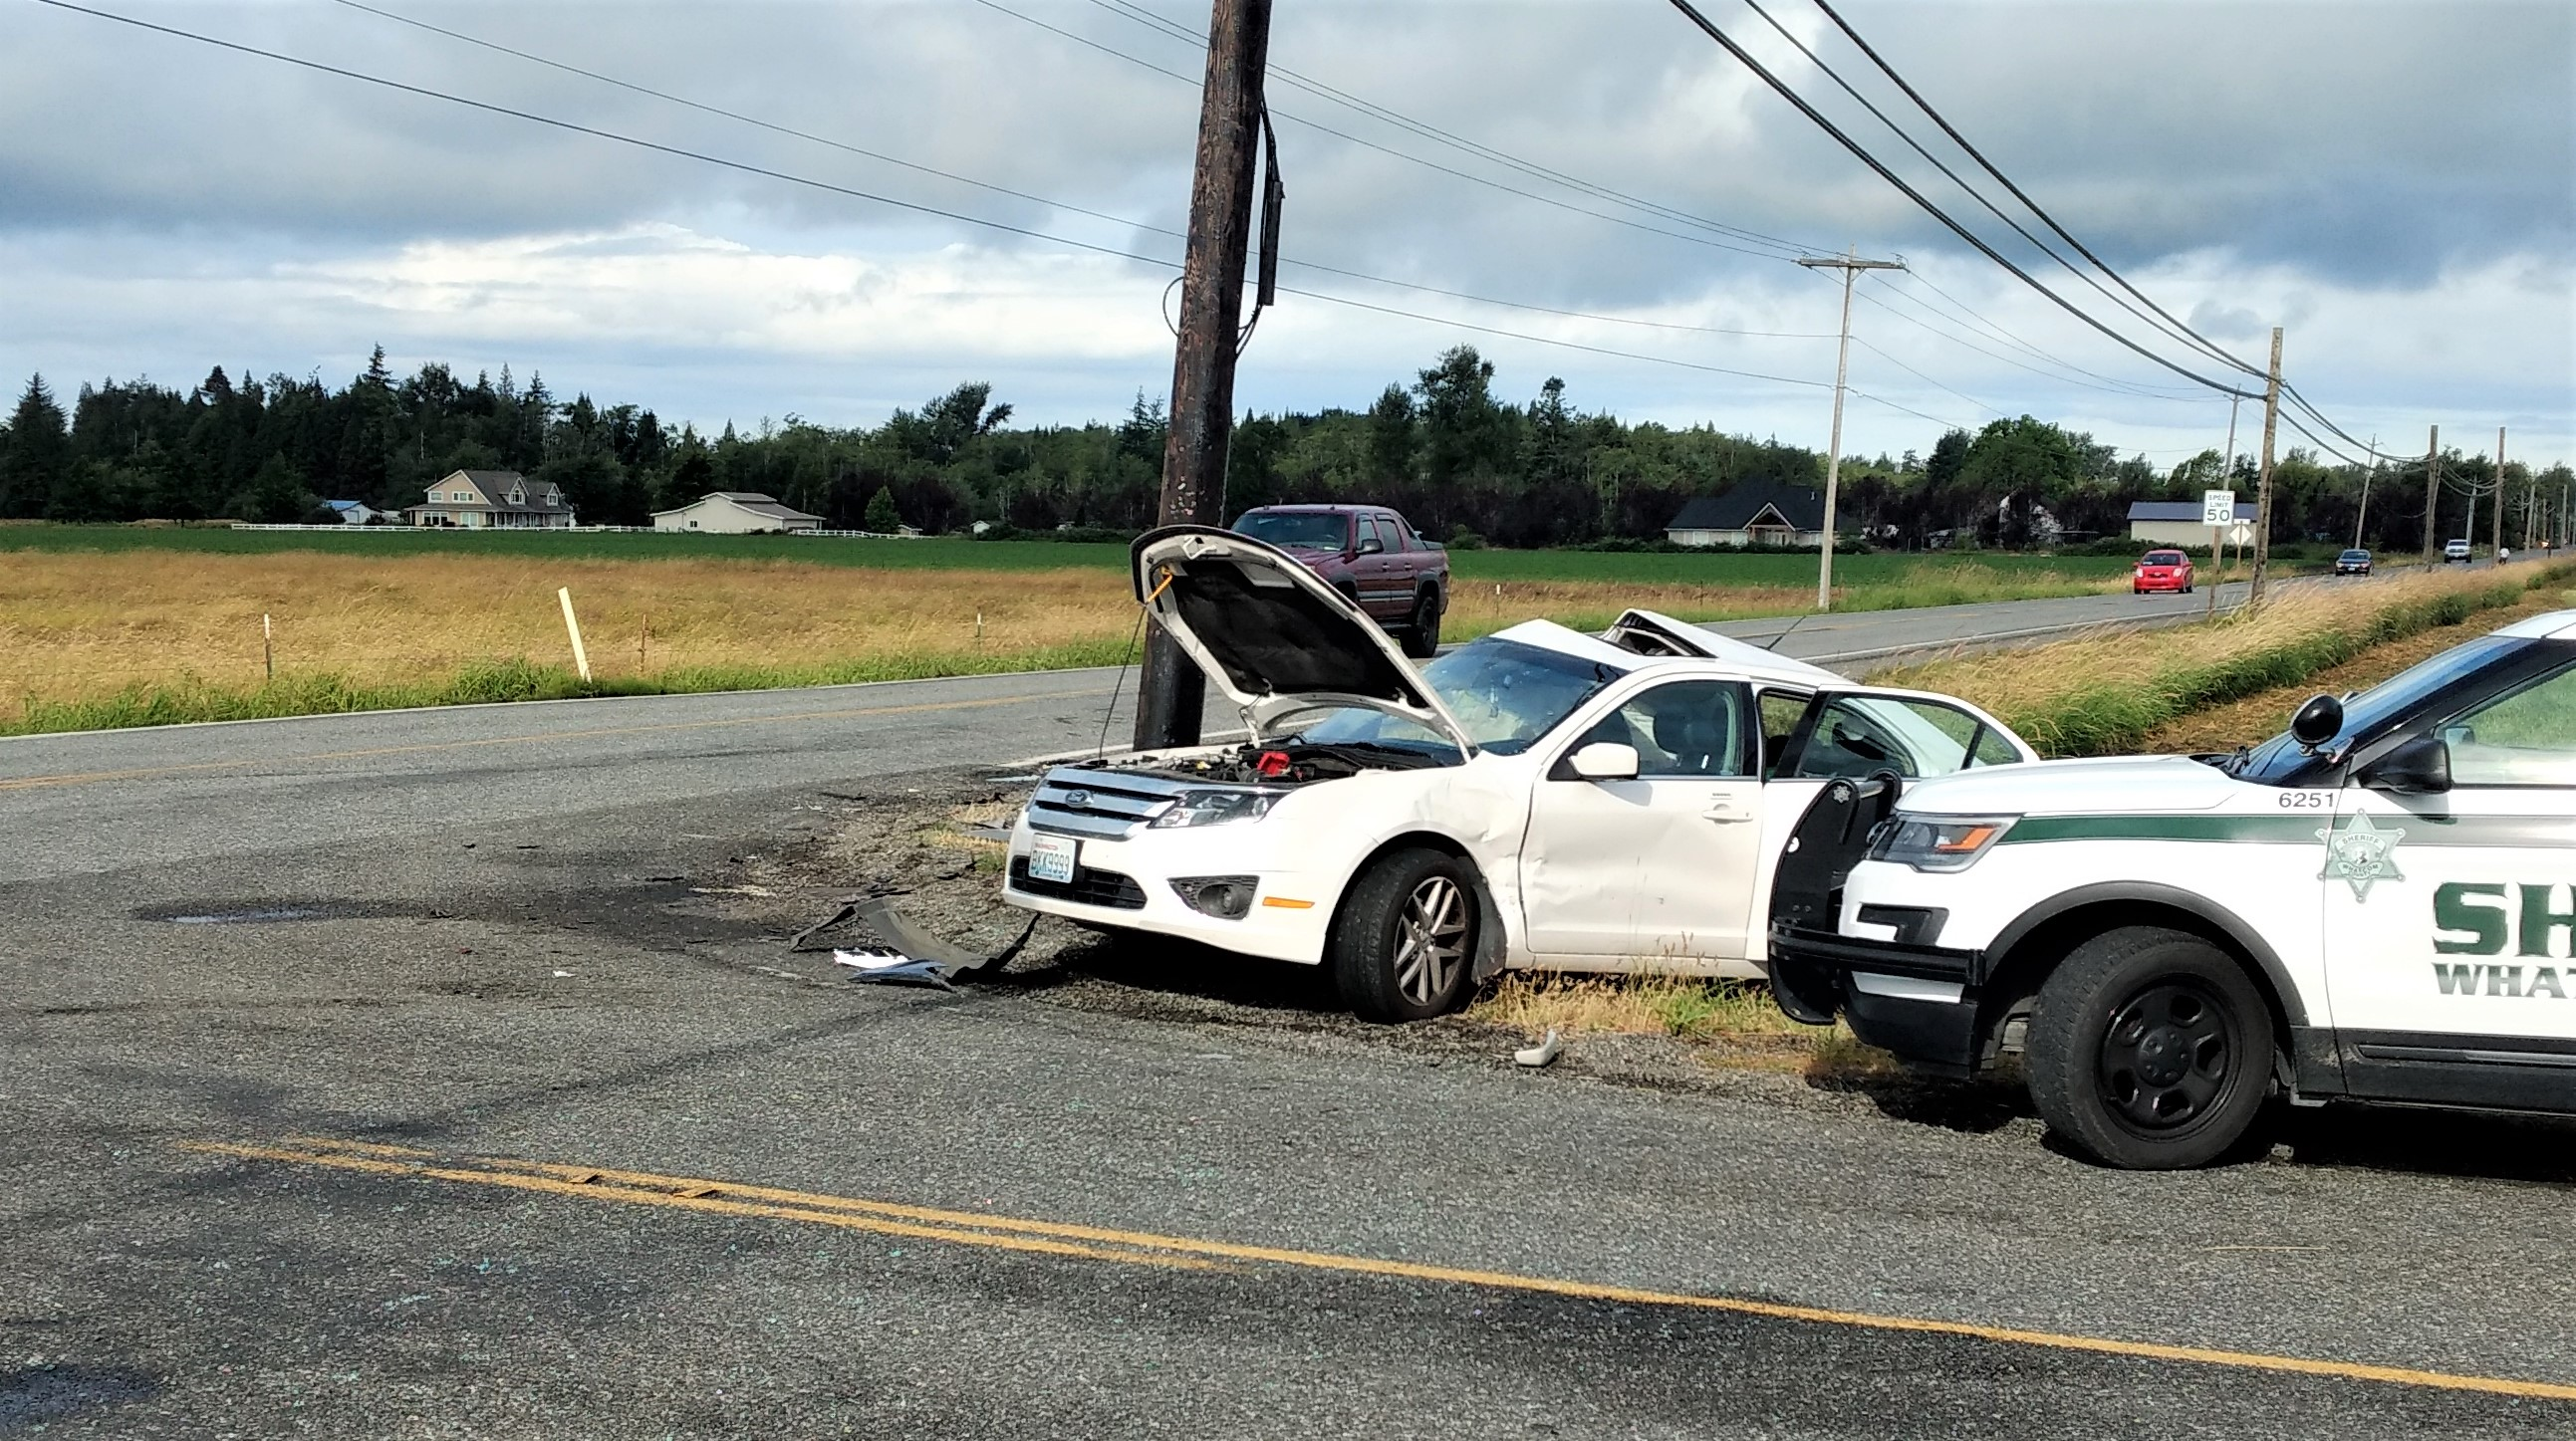 1 of 2 vehicles involved in a t-bone crash at the intersection of Olson and Mountain View Roads (June 28, 2019). Photo: My Ferndale News